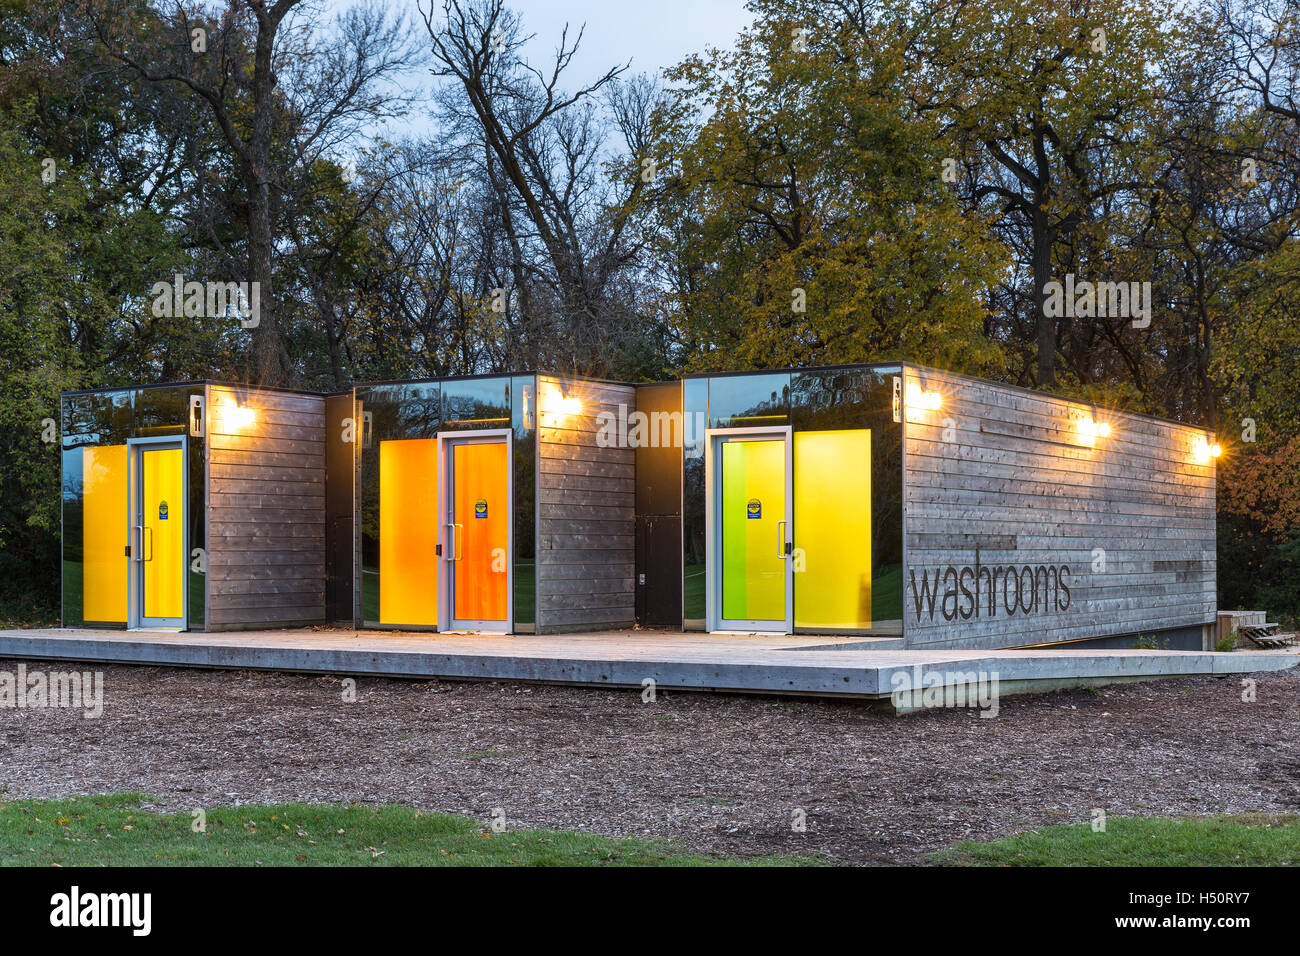 Shipping containers converted into washrooms, Assiniboine Park, Winnipeg, Manitoba, Canada. Stock Photo